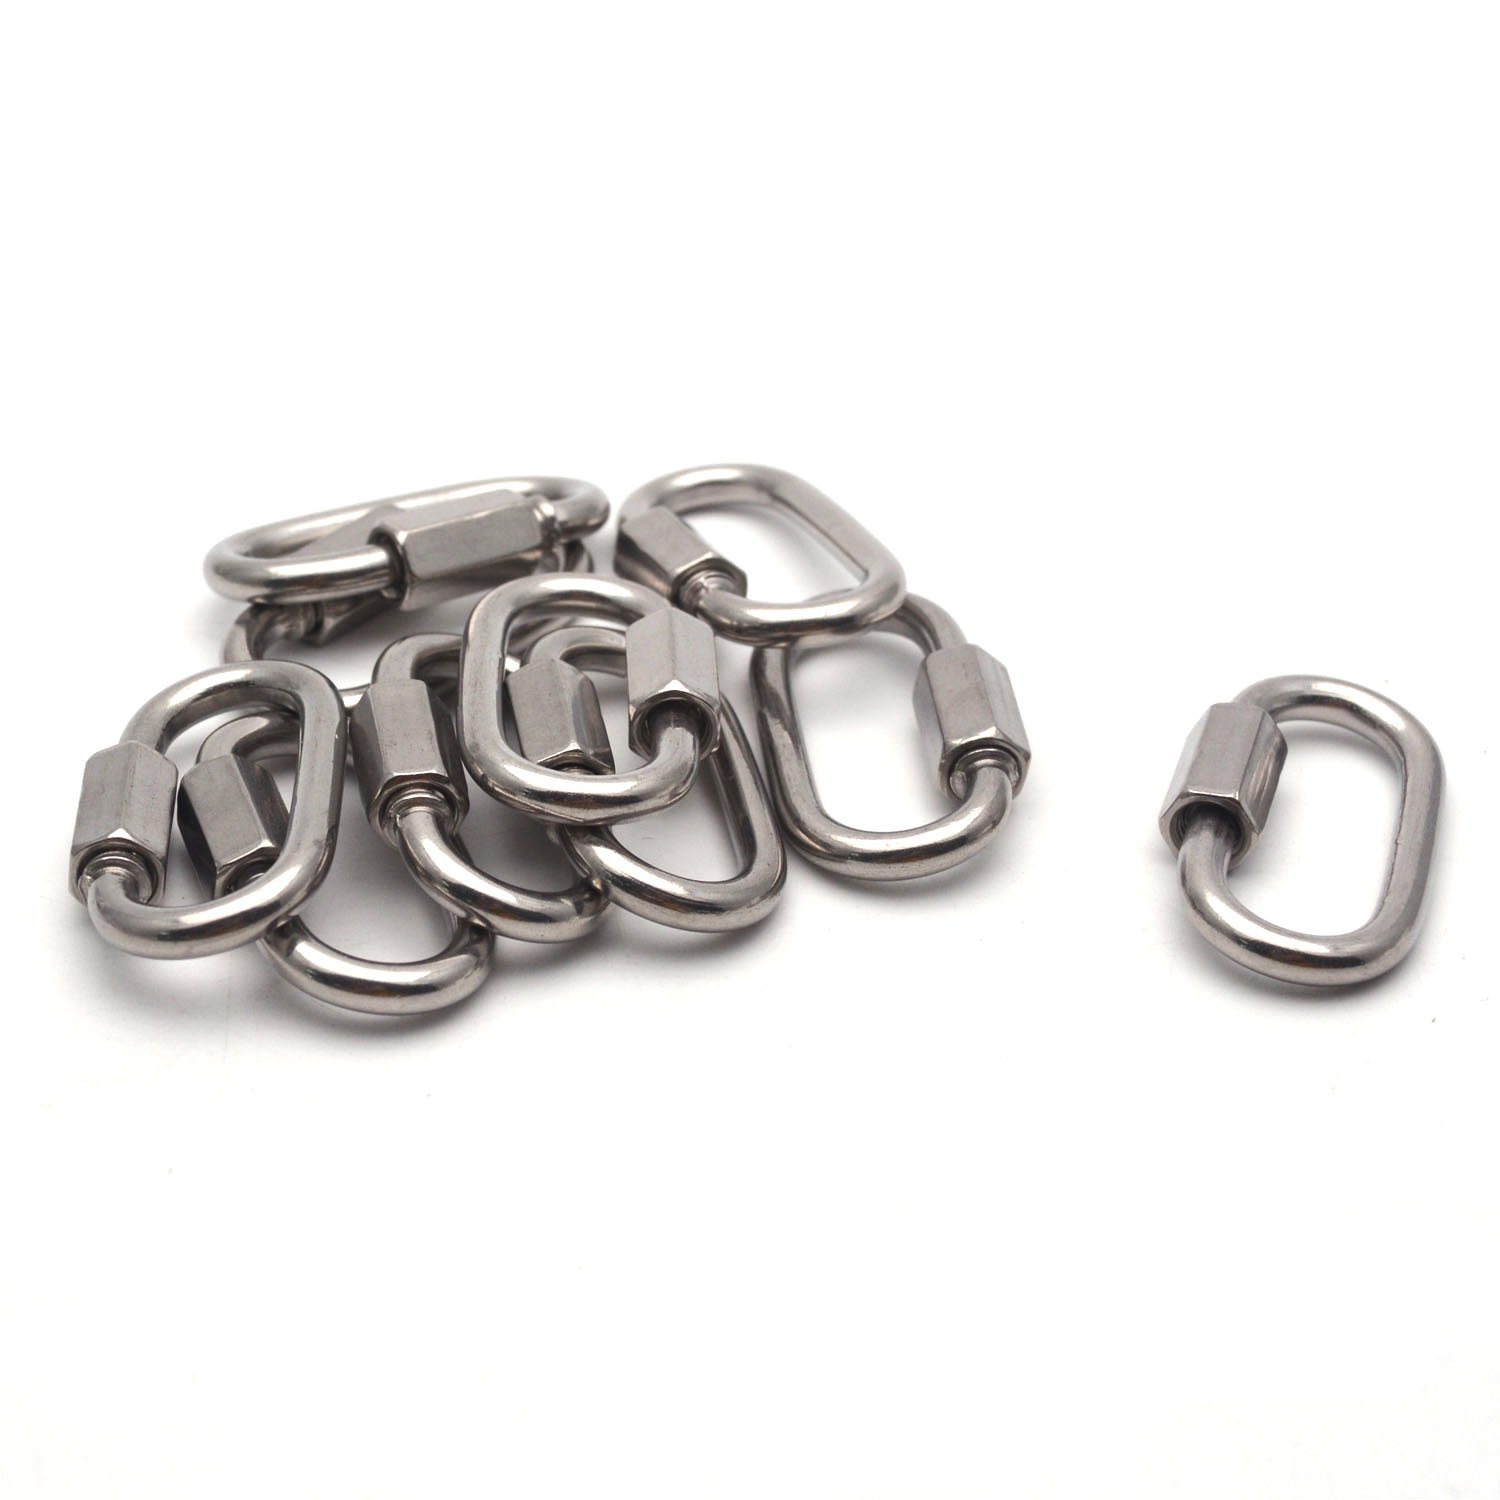 Antrader 304 Stainless Steel D Shape Quick Link Carabiner Oval Screwlock Chain Connector